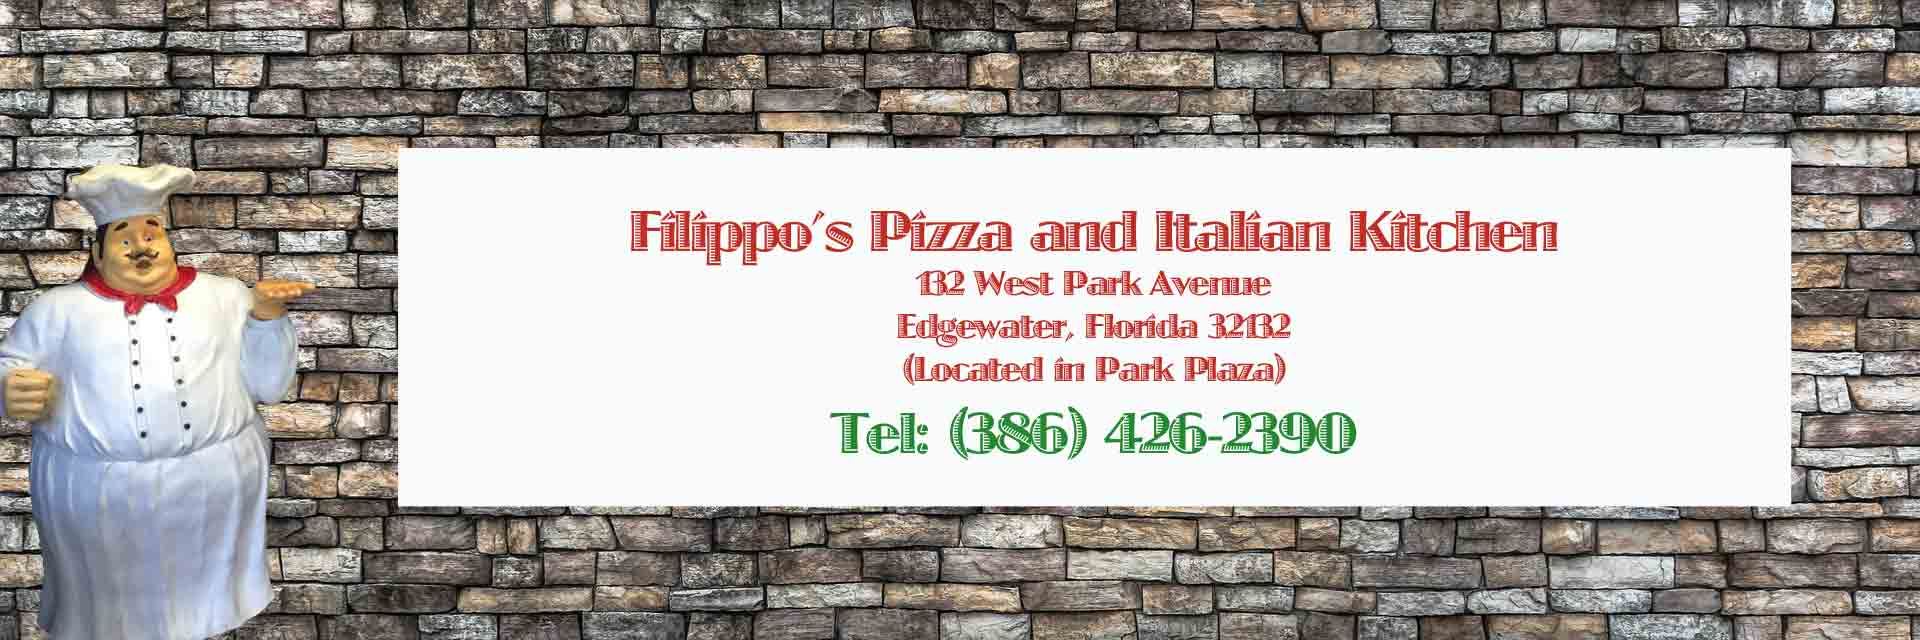 Pizza by Filippos - New York Style Pizza and Italian Kitchen